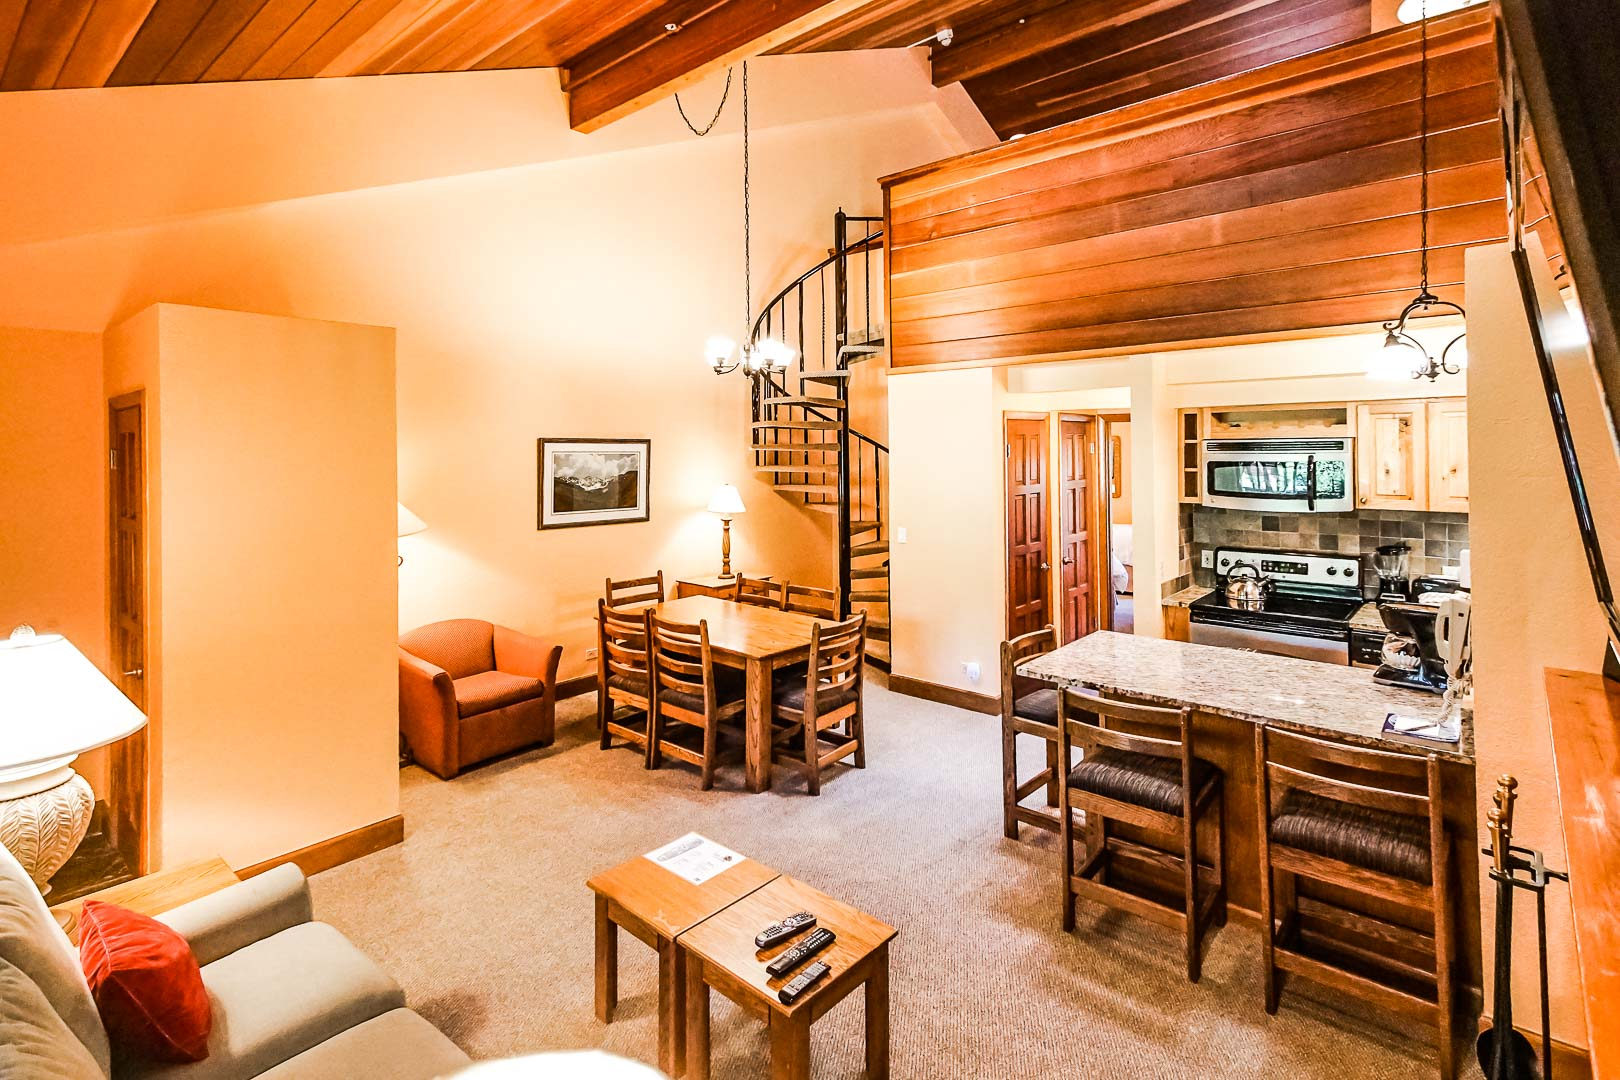 A spacious Loft condominiums at VRI's Cedar at Streamside in Colorado.